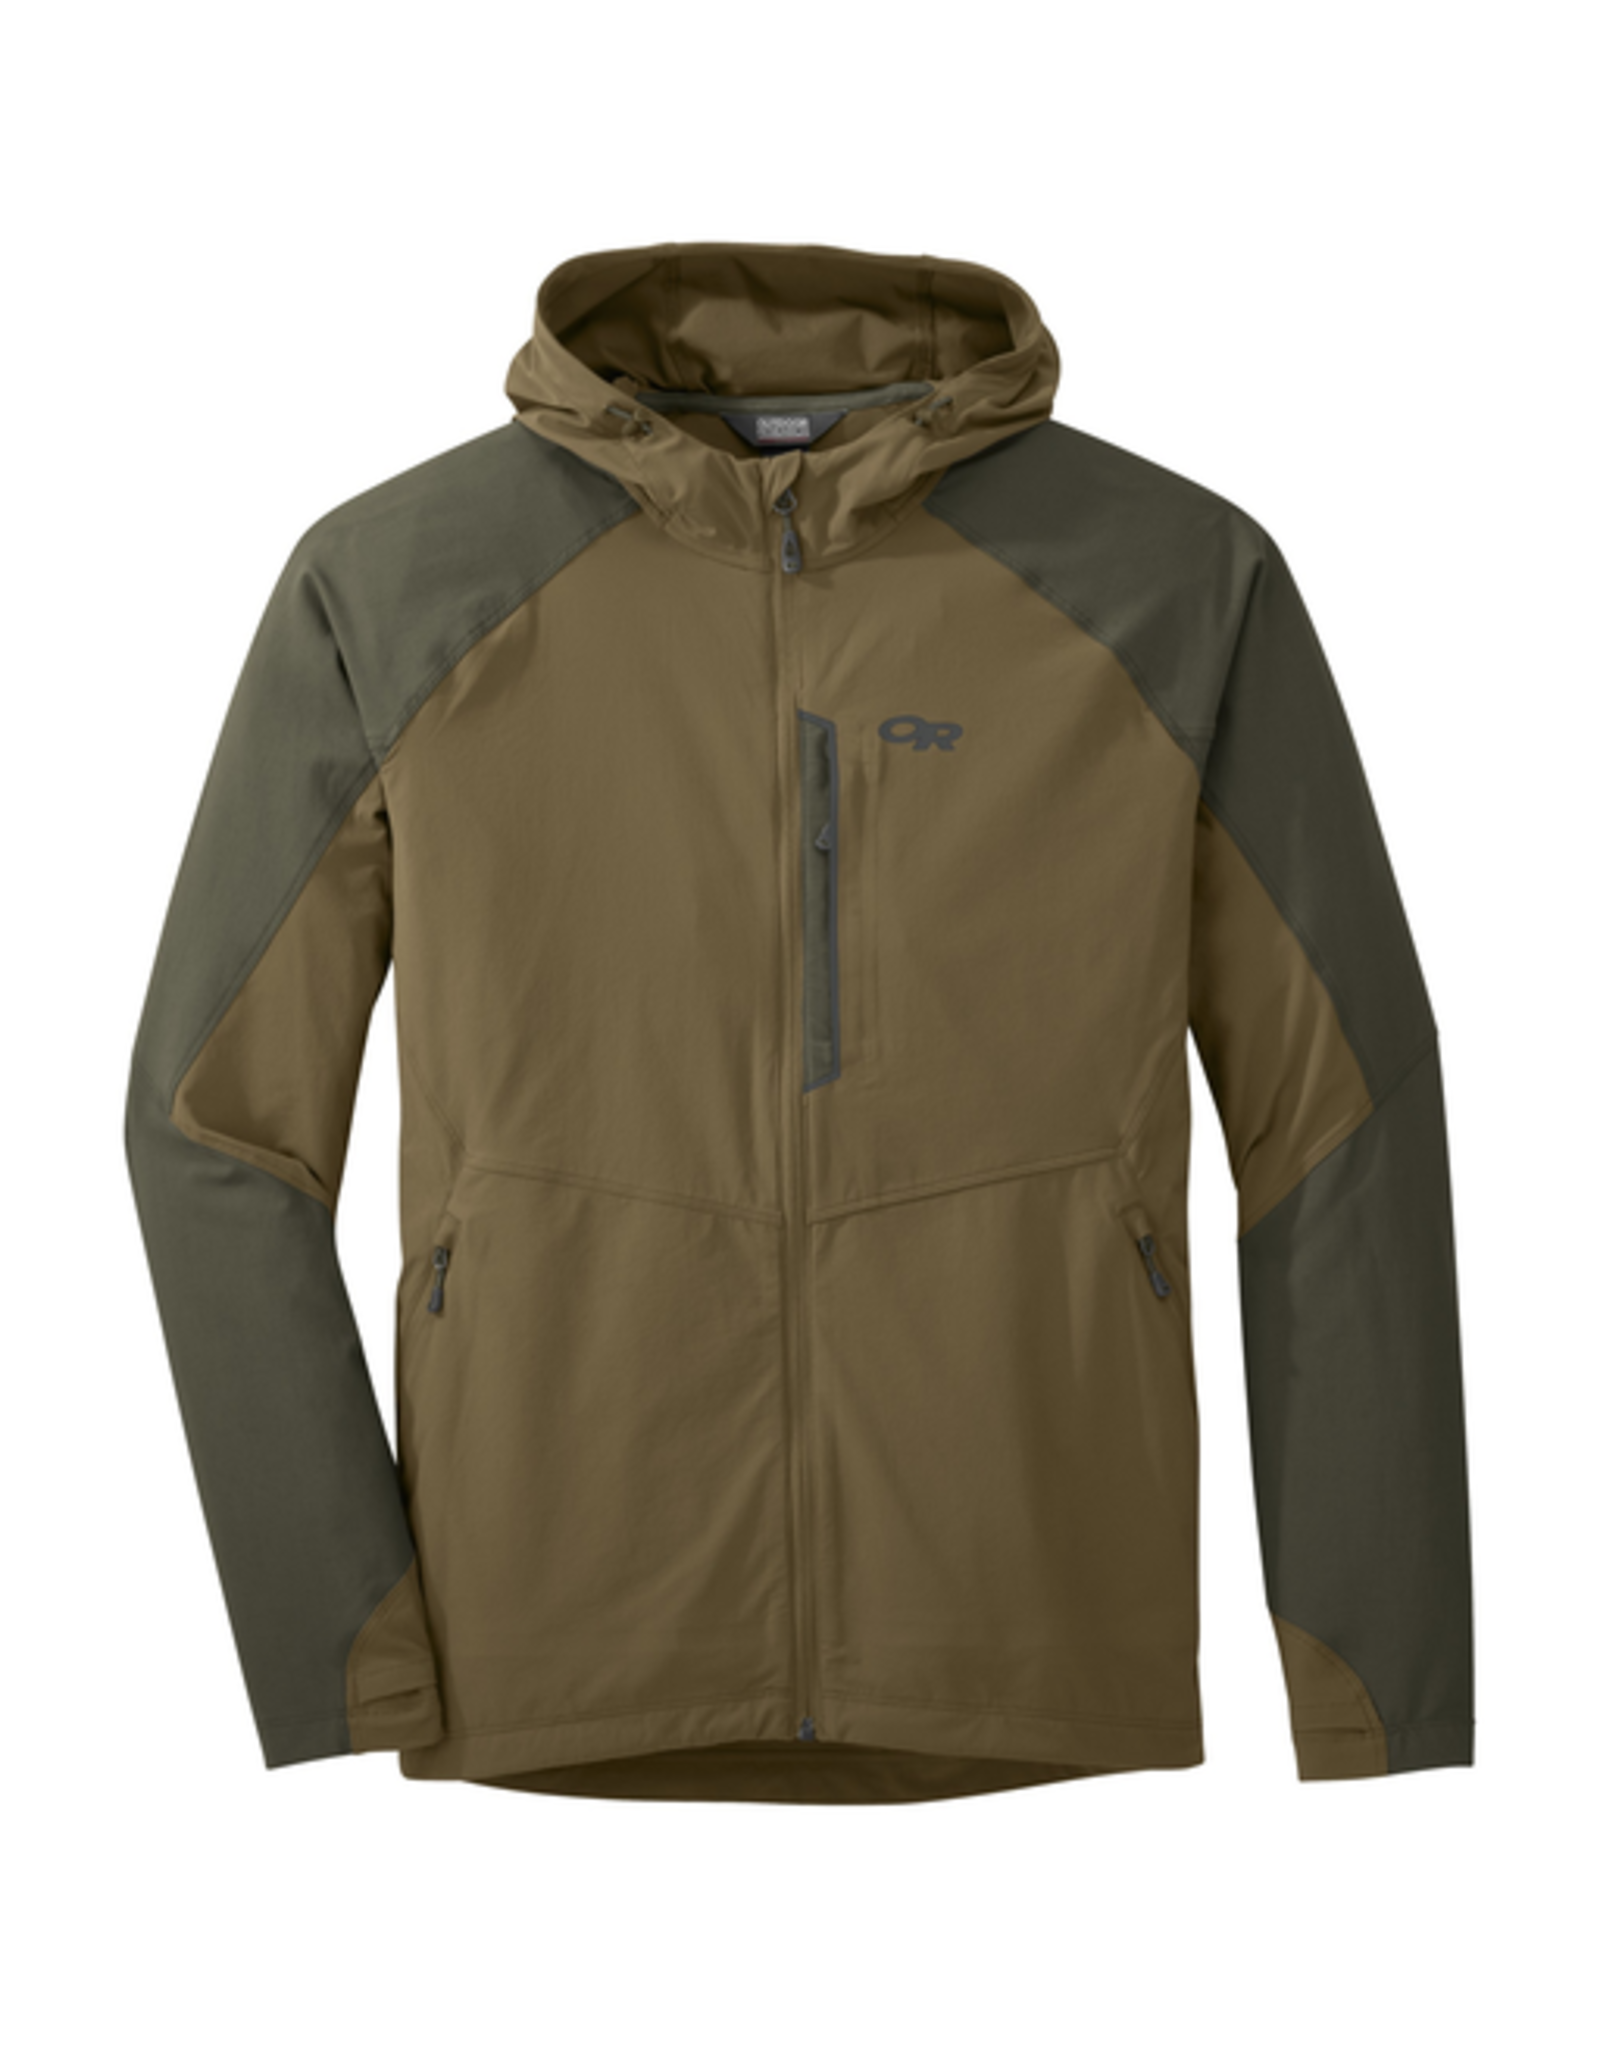 Outdoor Research OR Men's Ferrosi Hooded Jacket